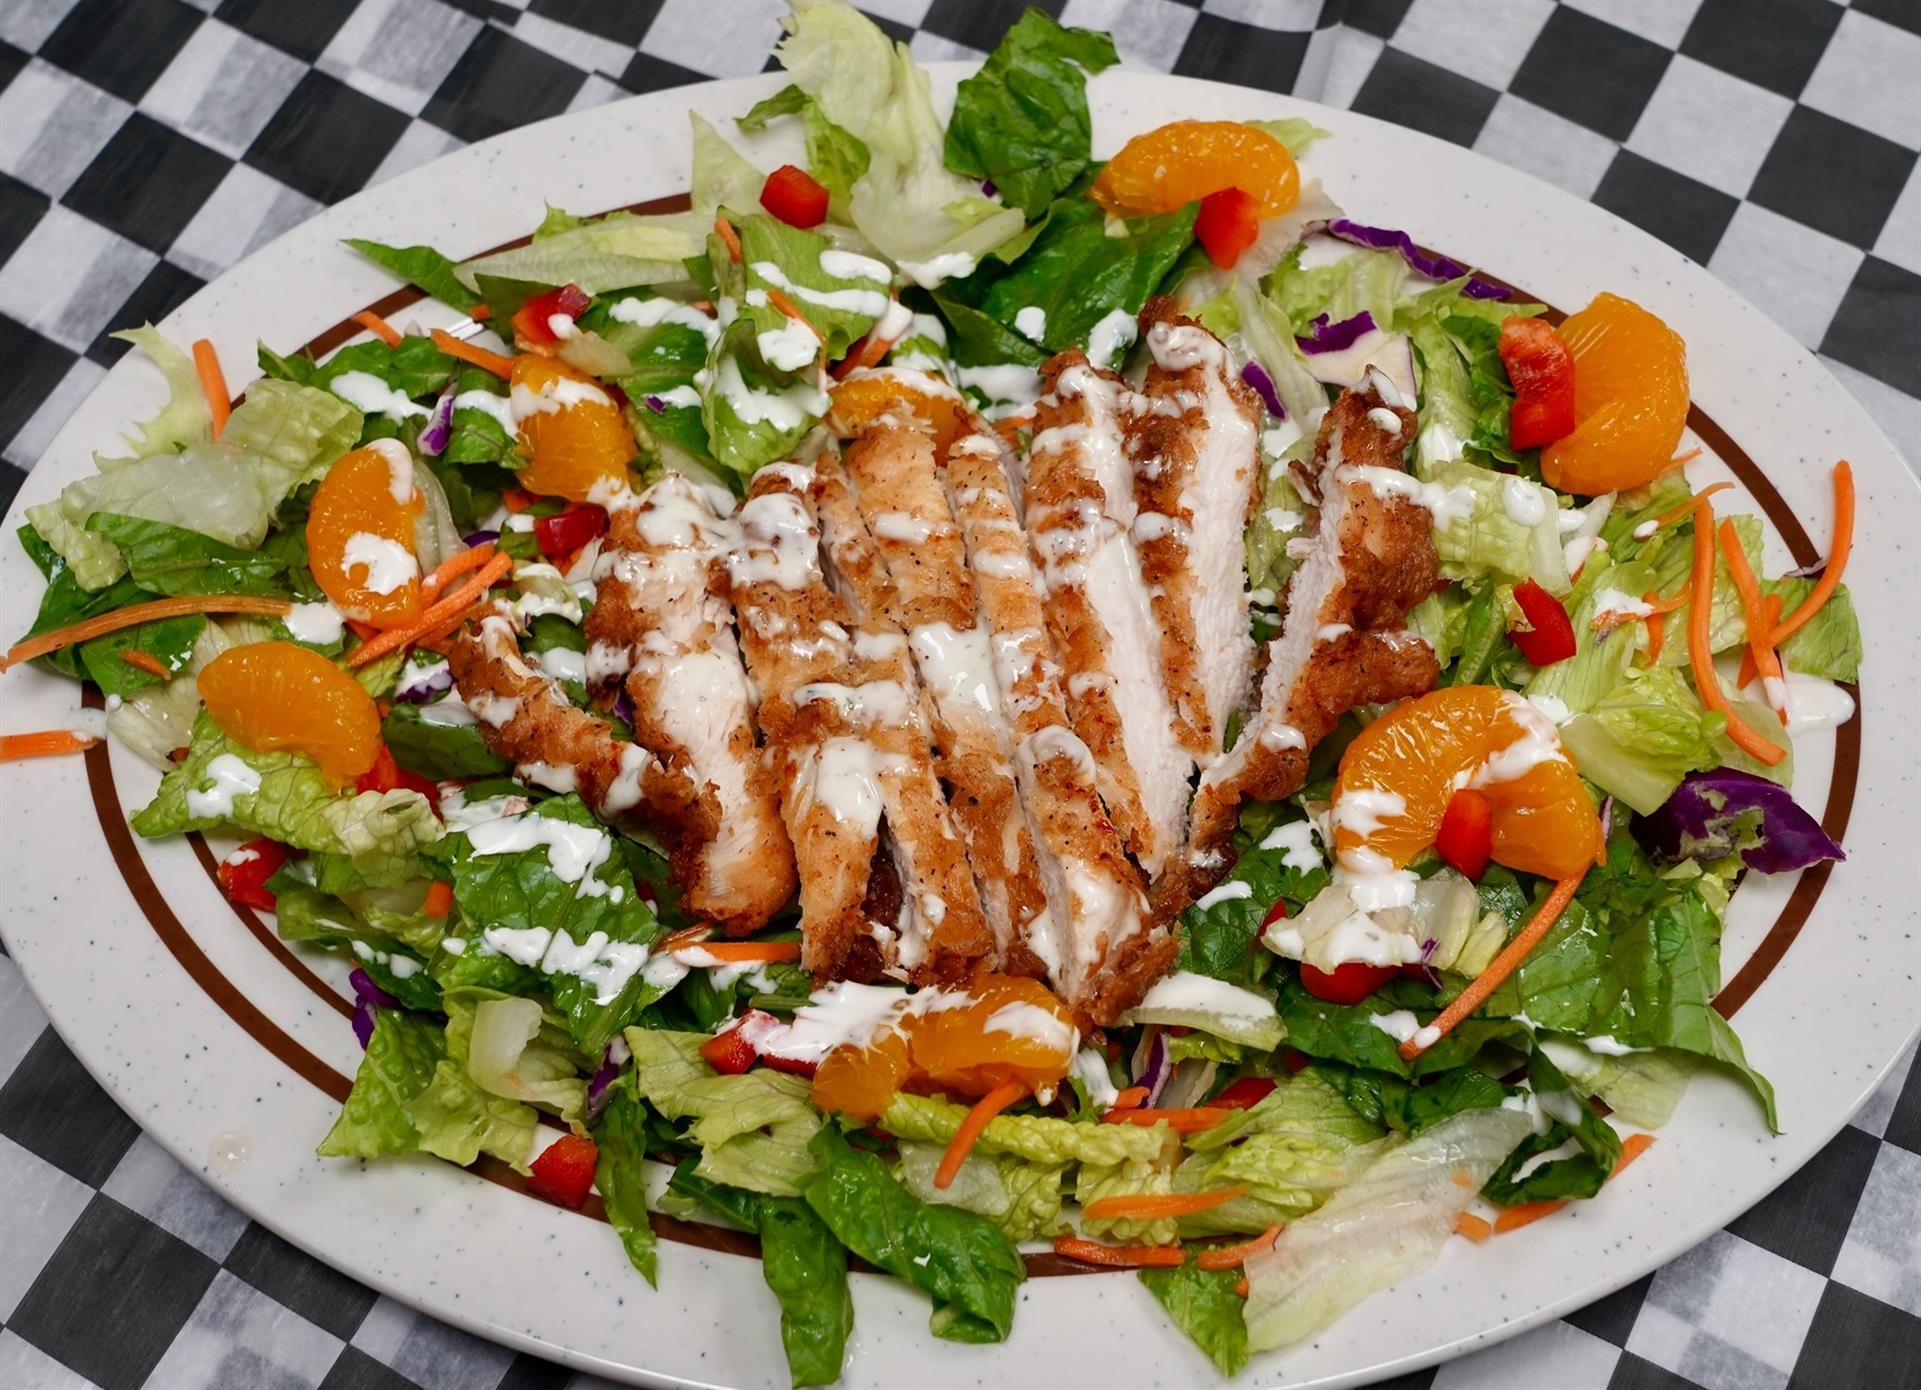 crispy chicken salad with lettuce, carrots, and mandorin oranges